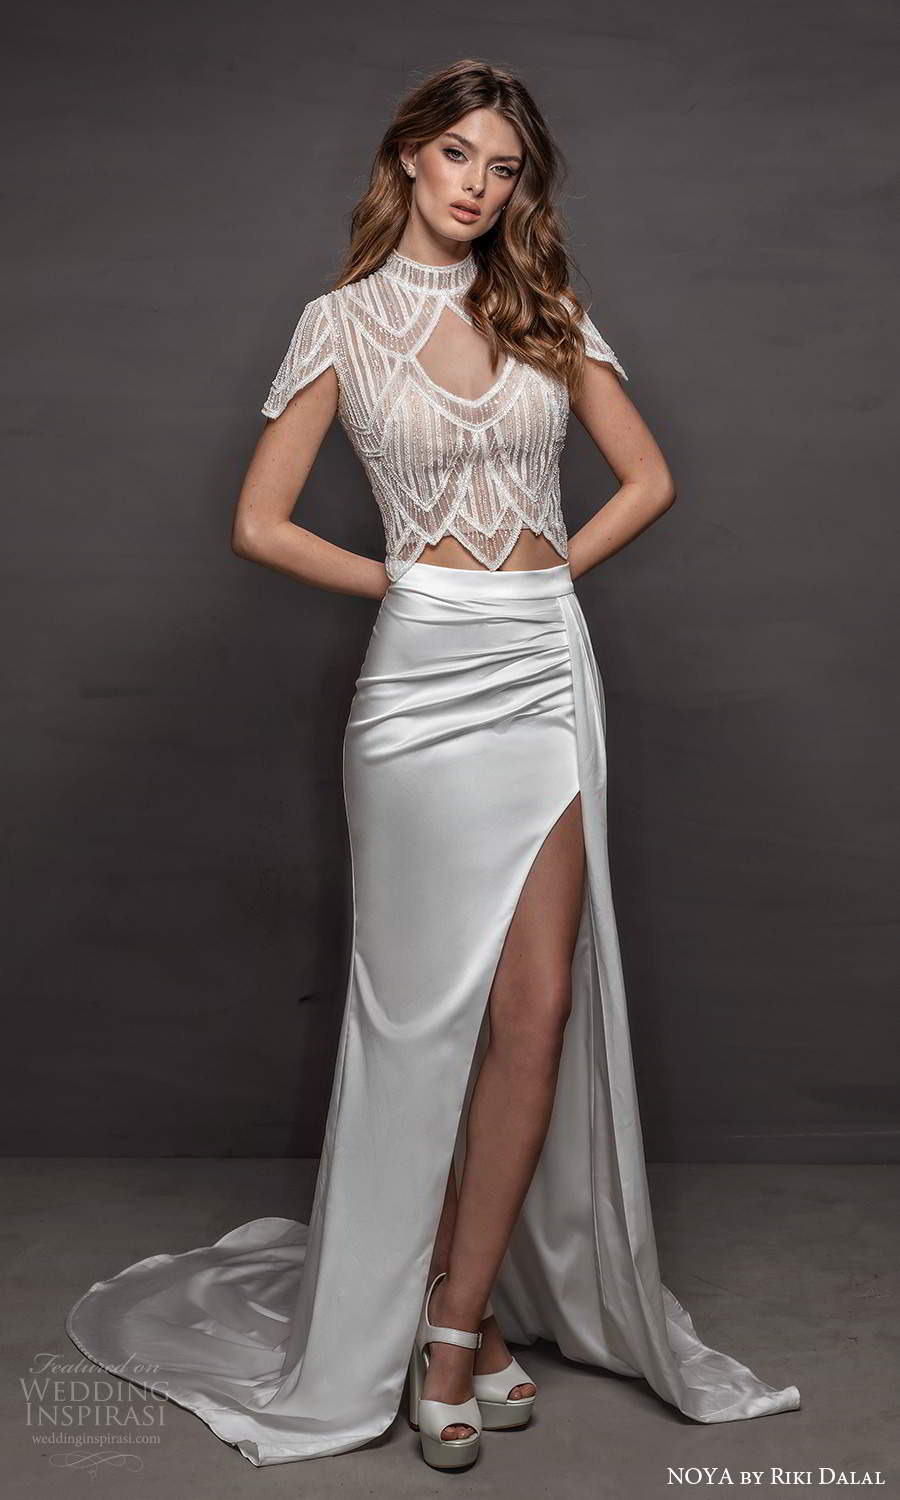 noya riki dalal 2021 bridal short sleeve high neckline embellished top slit skirt 2 piece sheath wedding dress (16) mv